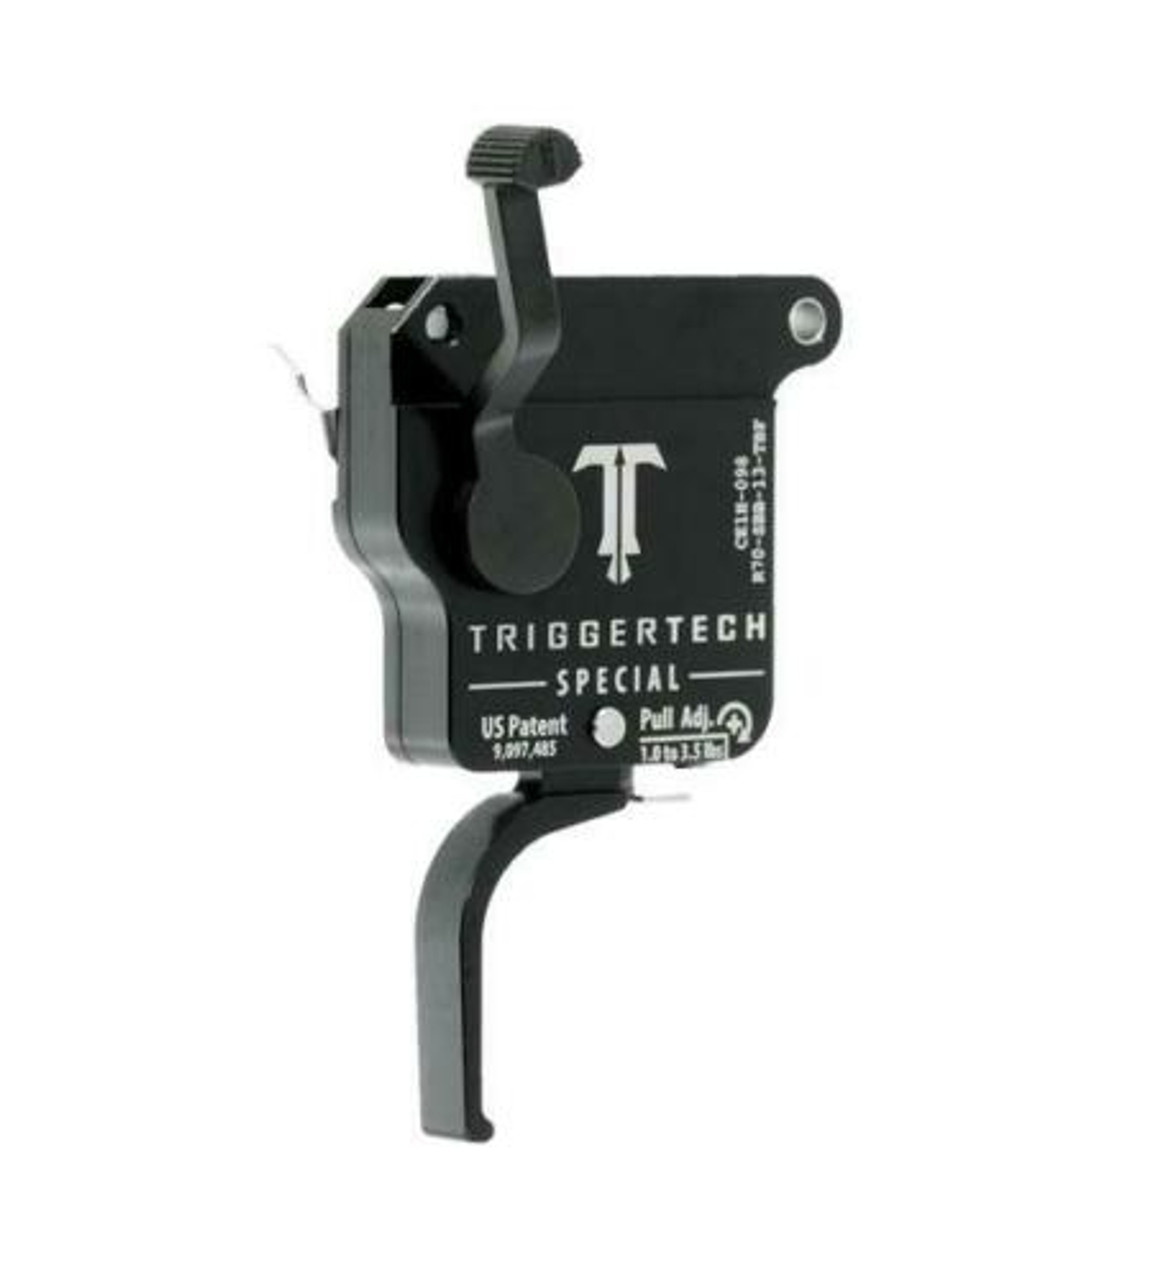 TriggerTech Remington 700 Single Stage Special Flat PVD Black Single Stage Trigger